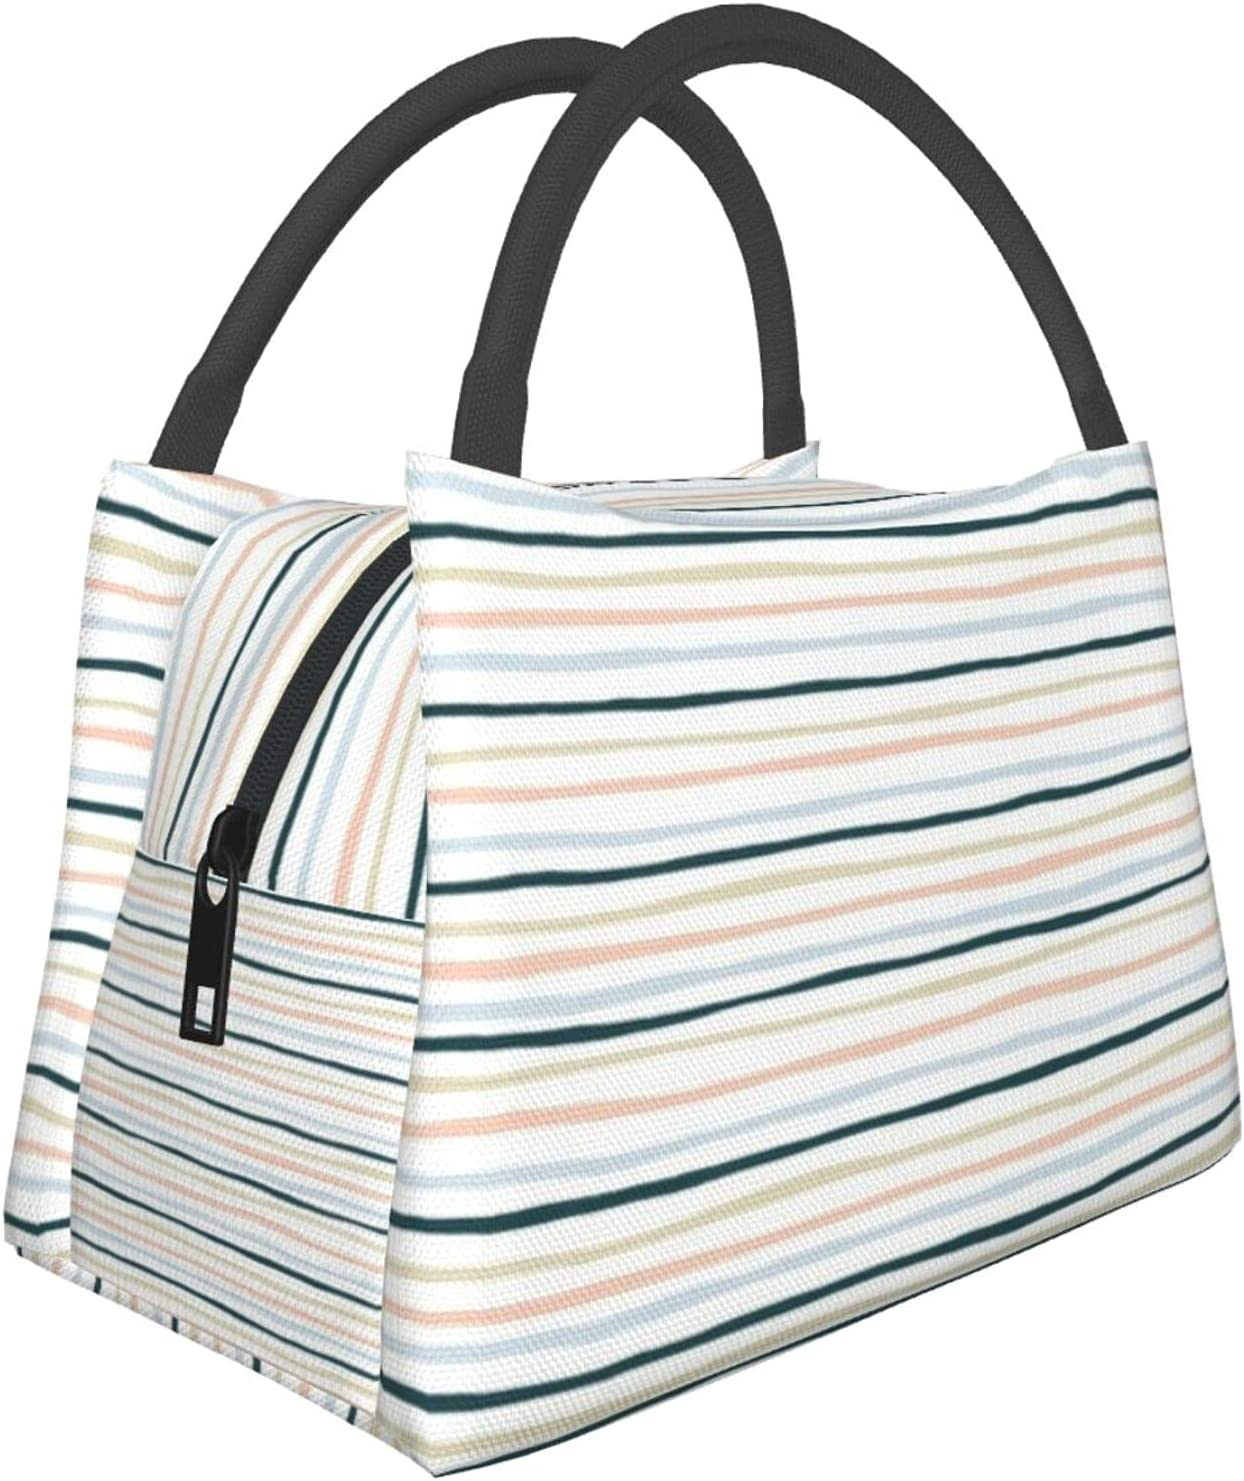 Portable Insulation Credence New mail order Bag Lunch White Lines Large Shenanigans